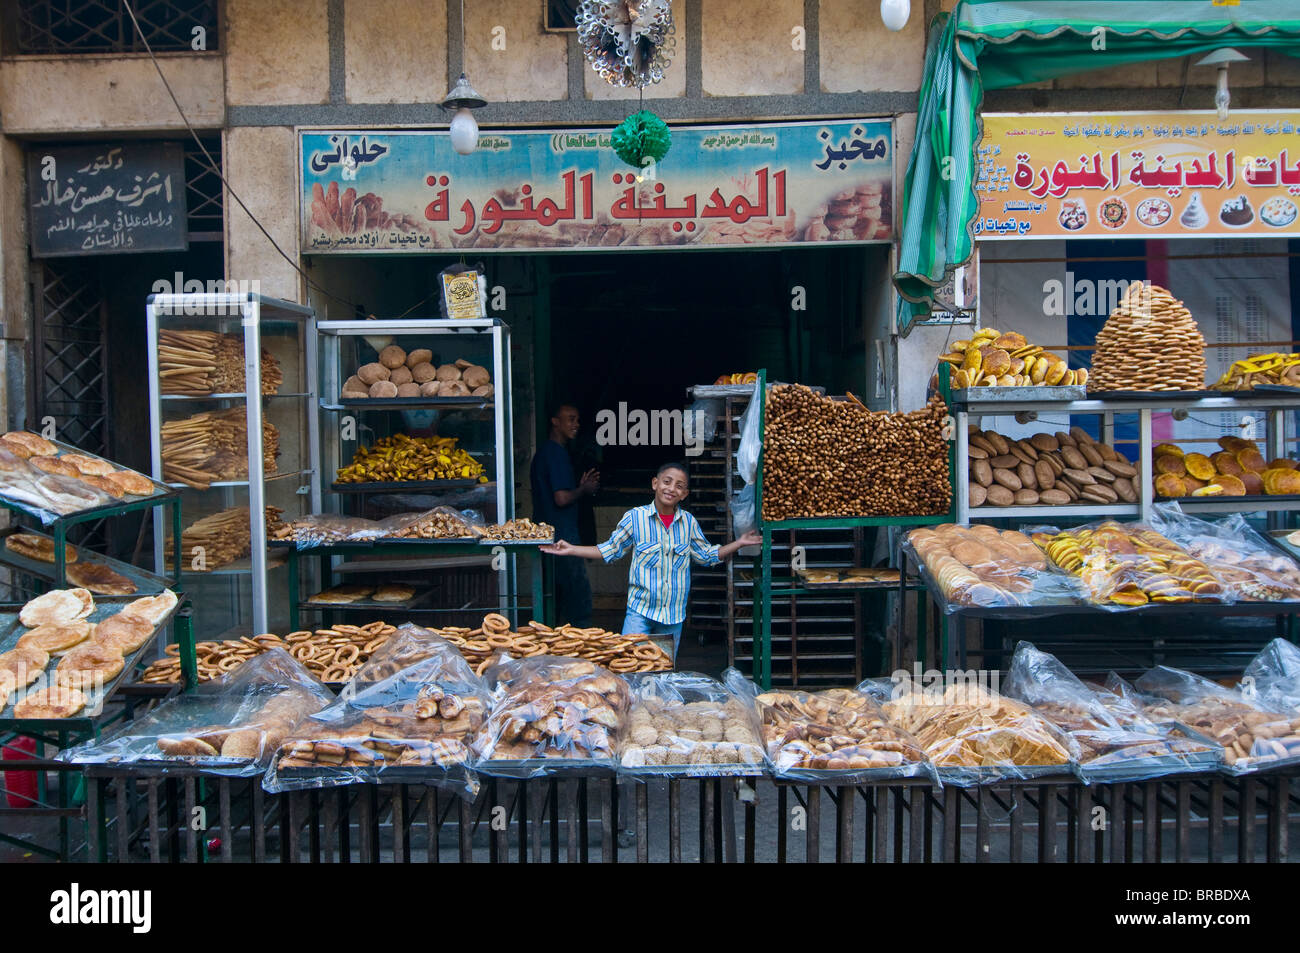 Young boy selling fresh bread in a bakery in the old part of Cairo, Egypt, North Africa - Stock Image